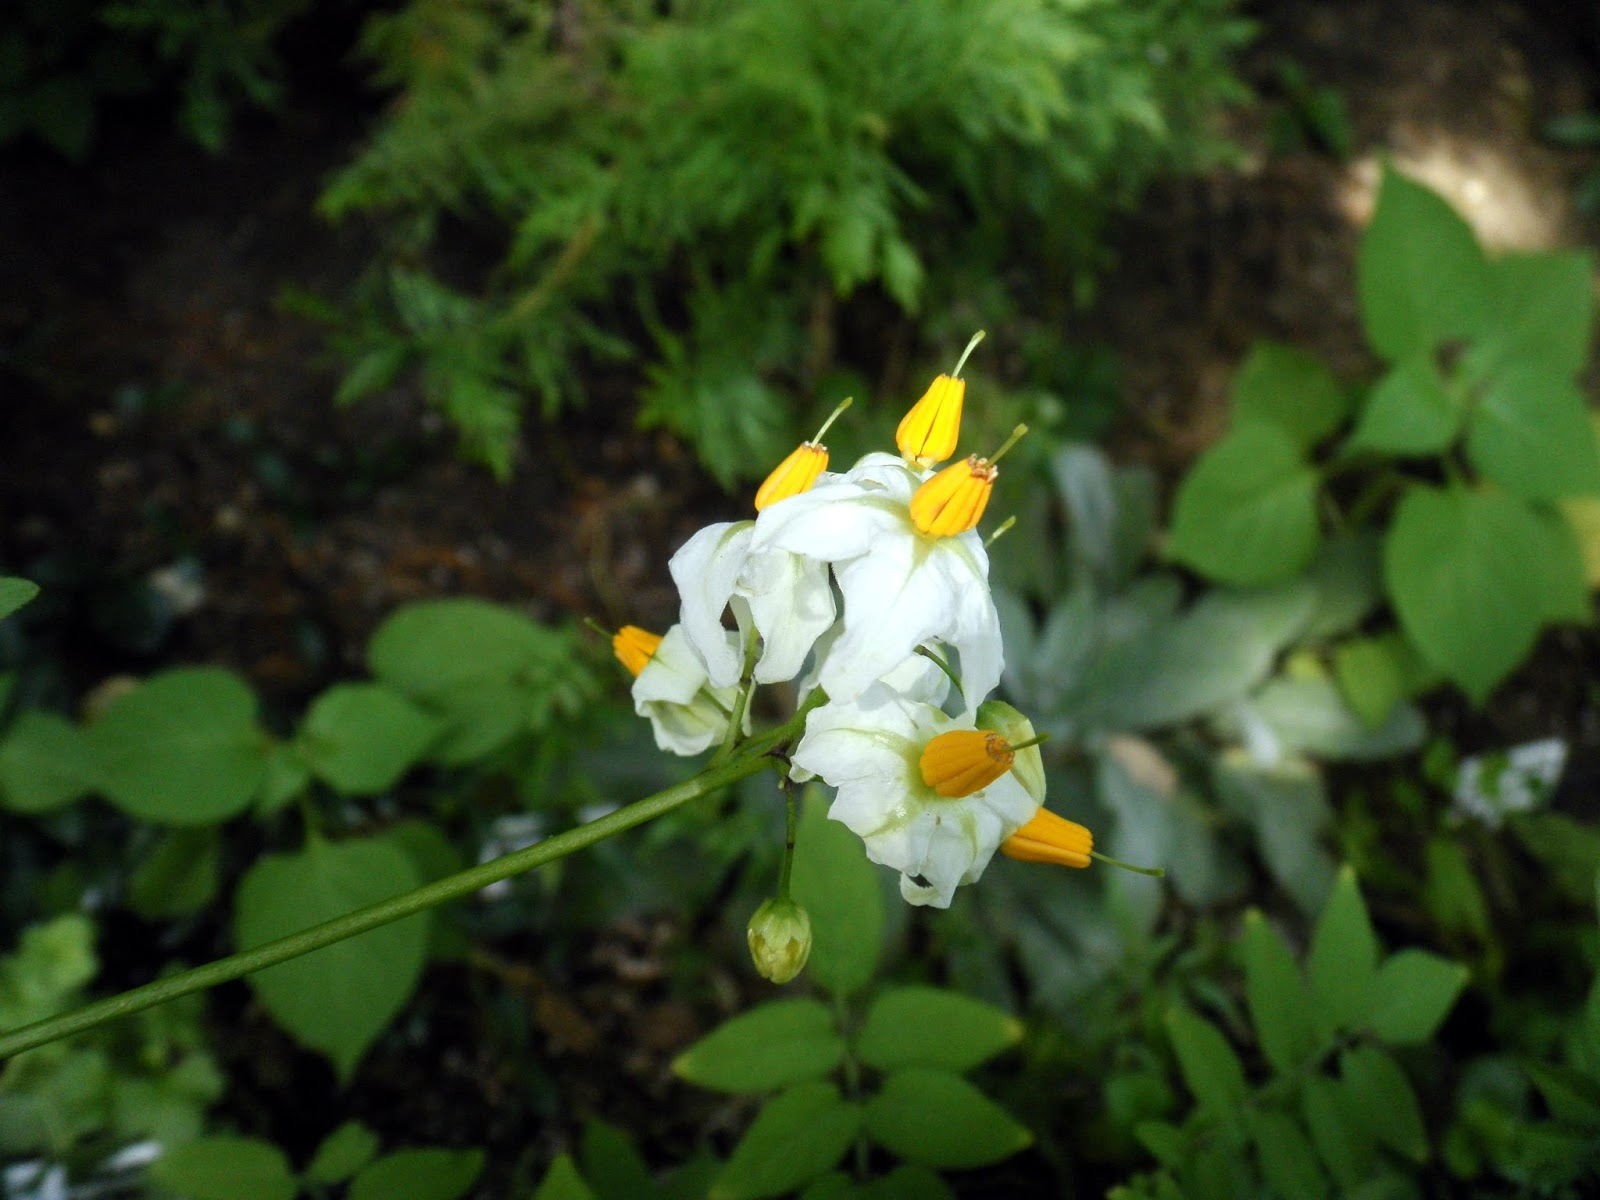 Scirpidiellas plants wild potatoes solanum sect petota can be hybridized with other potatoes very ornamental plant flowers showy white with yellow center leaves glossy lovely mightylinksfo